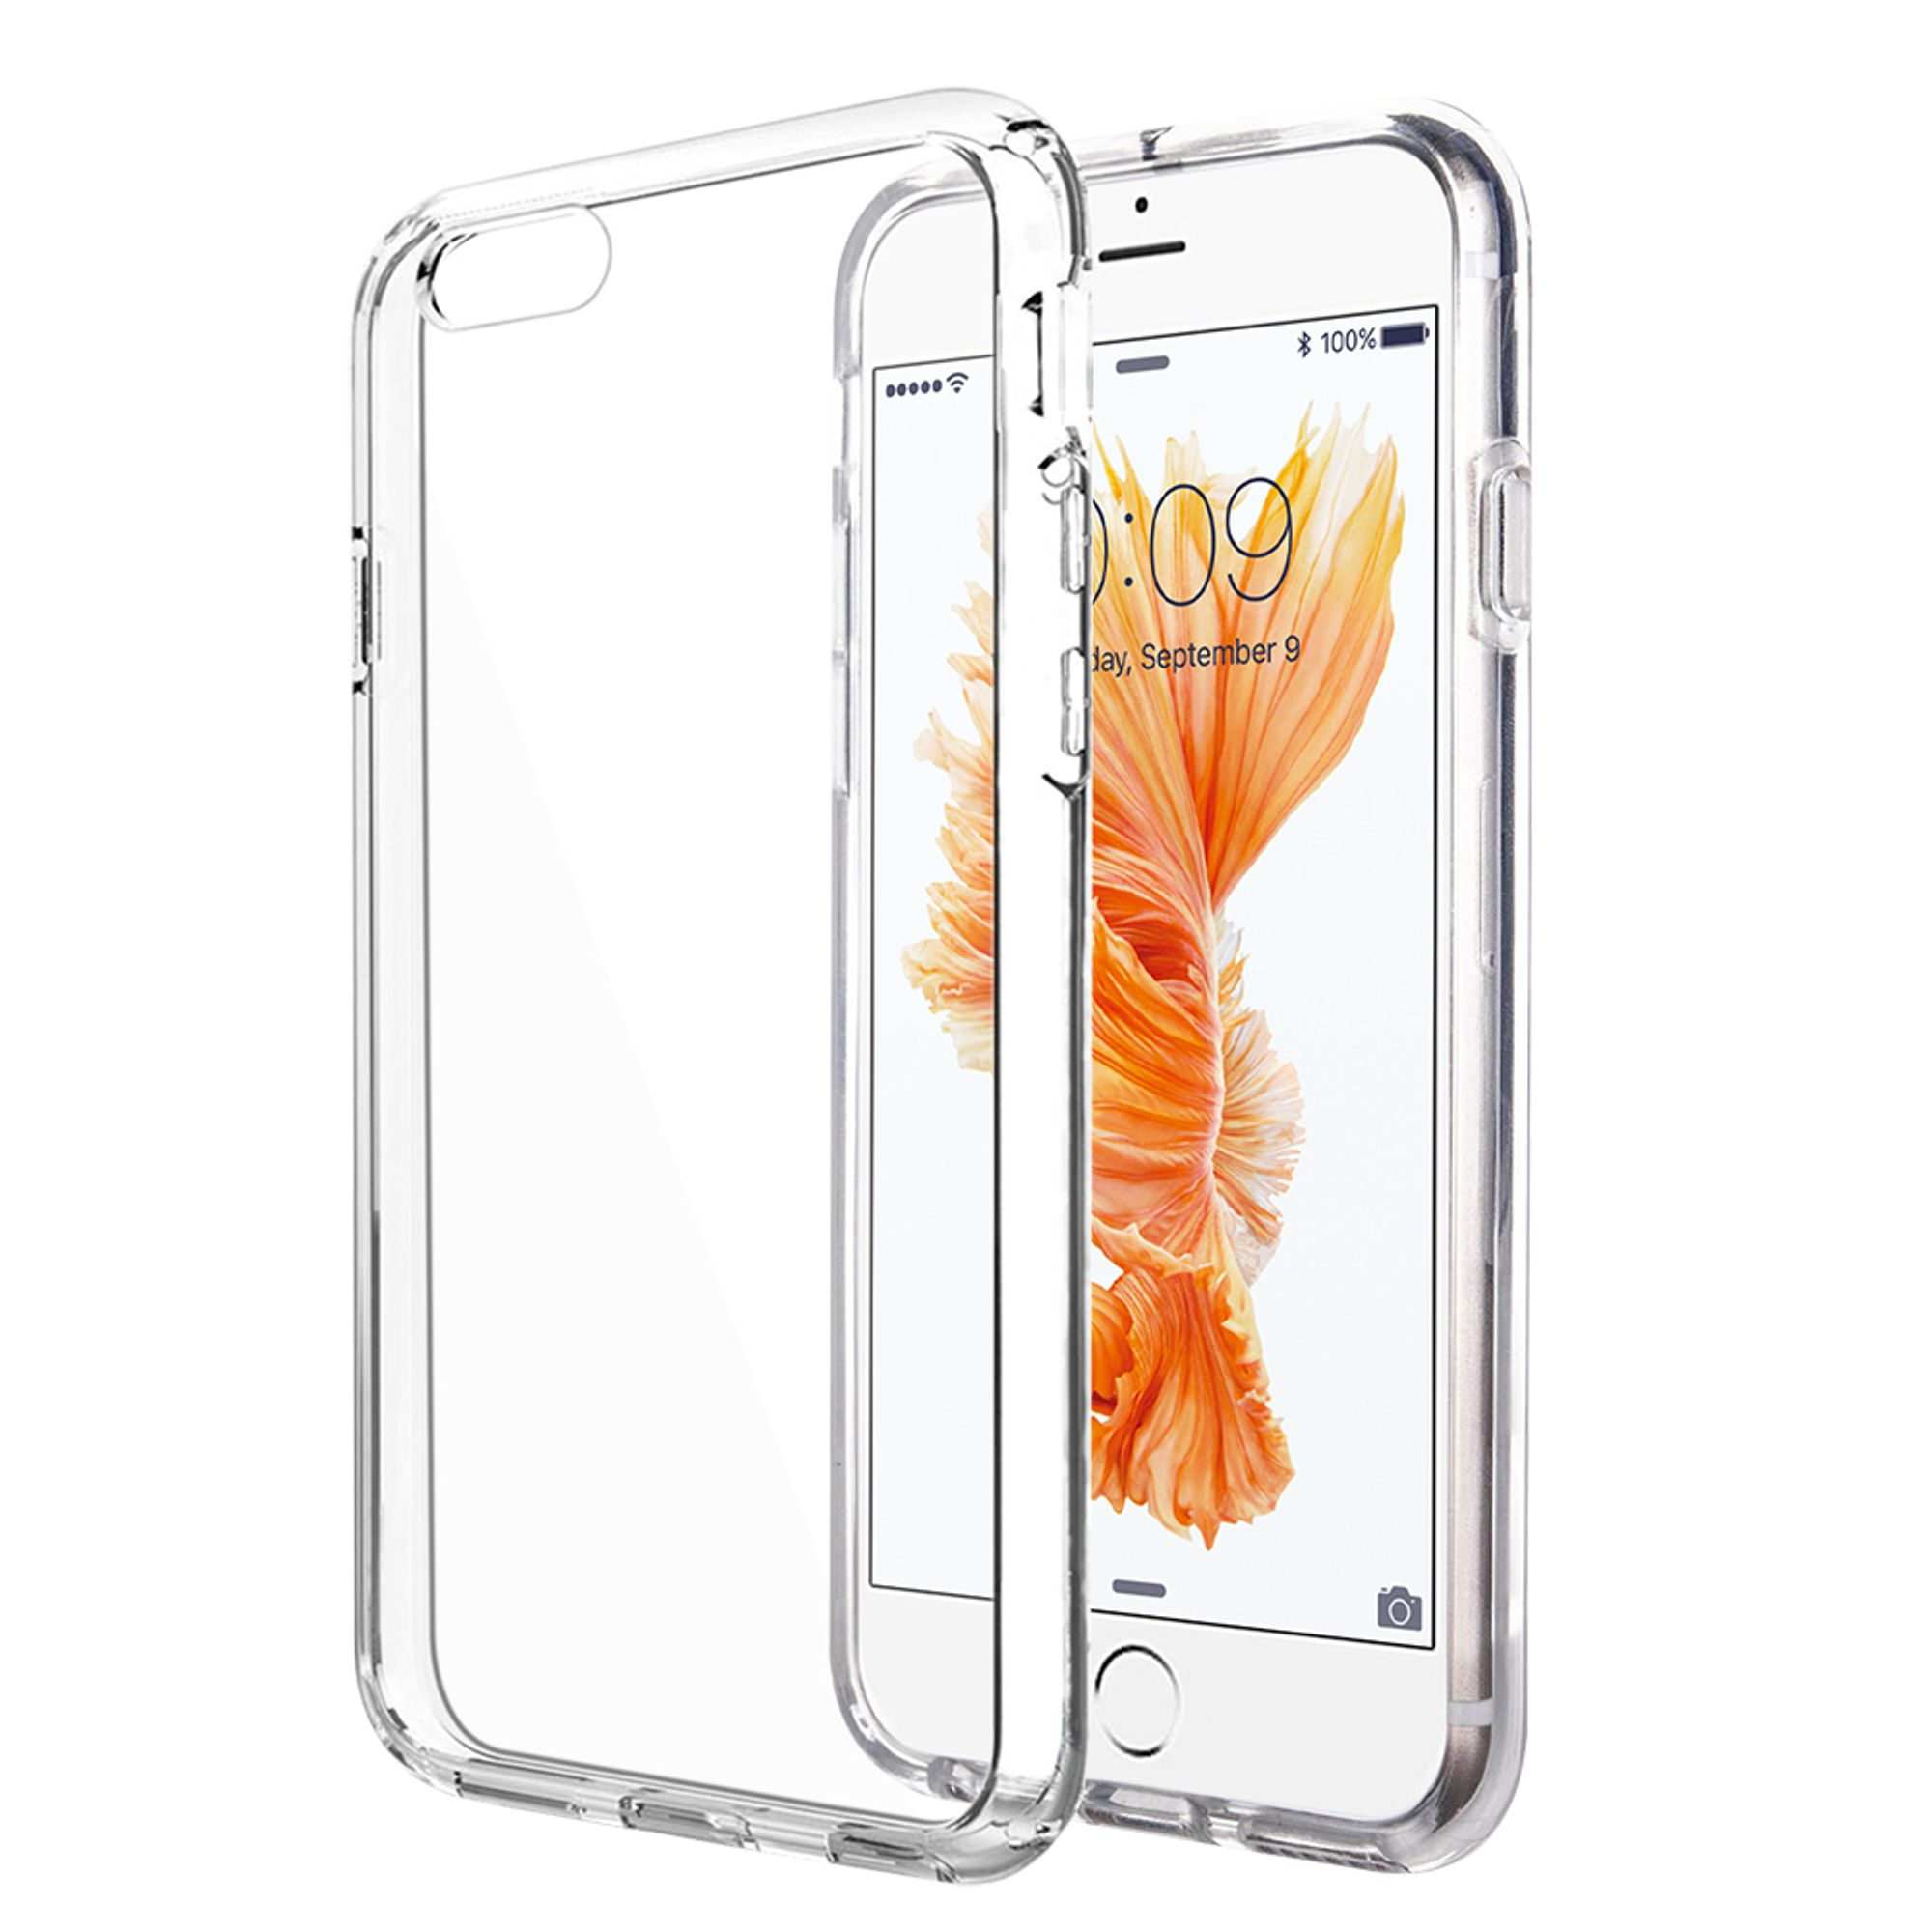 Insten High Quality Crystal Skin TPU Rubber Skin Gel Case Cover For Apple iPhone 6s Plus / 6 Plus - Clear